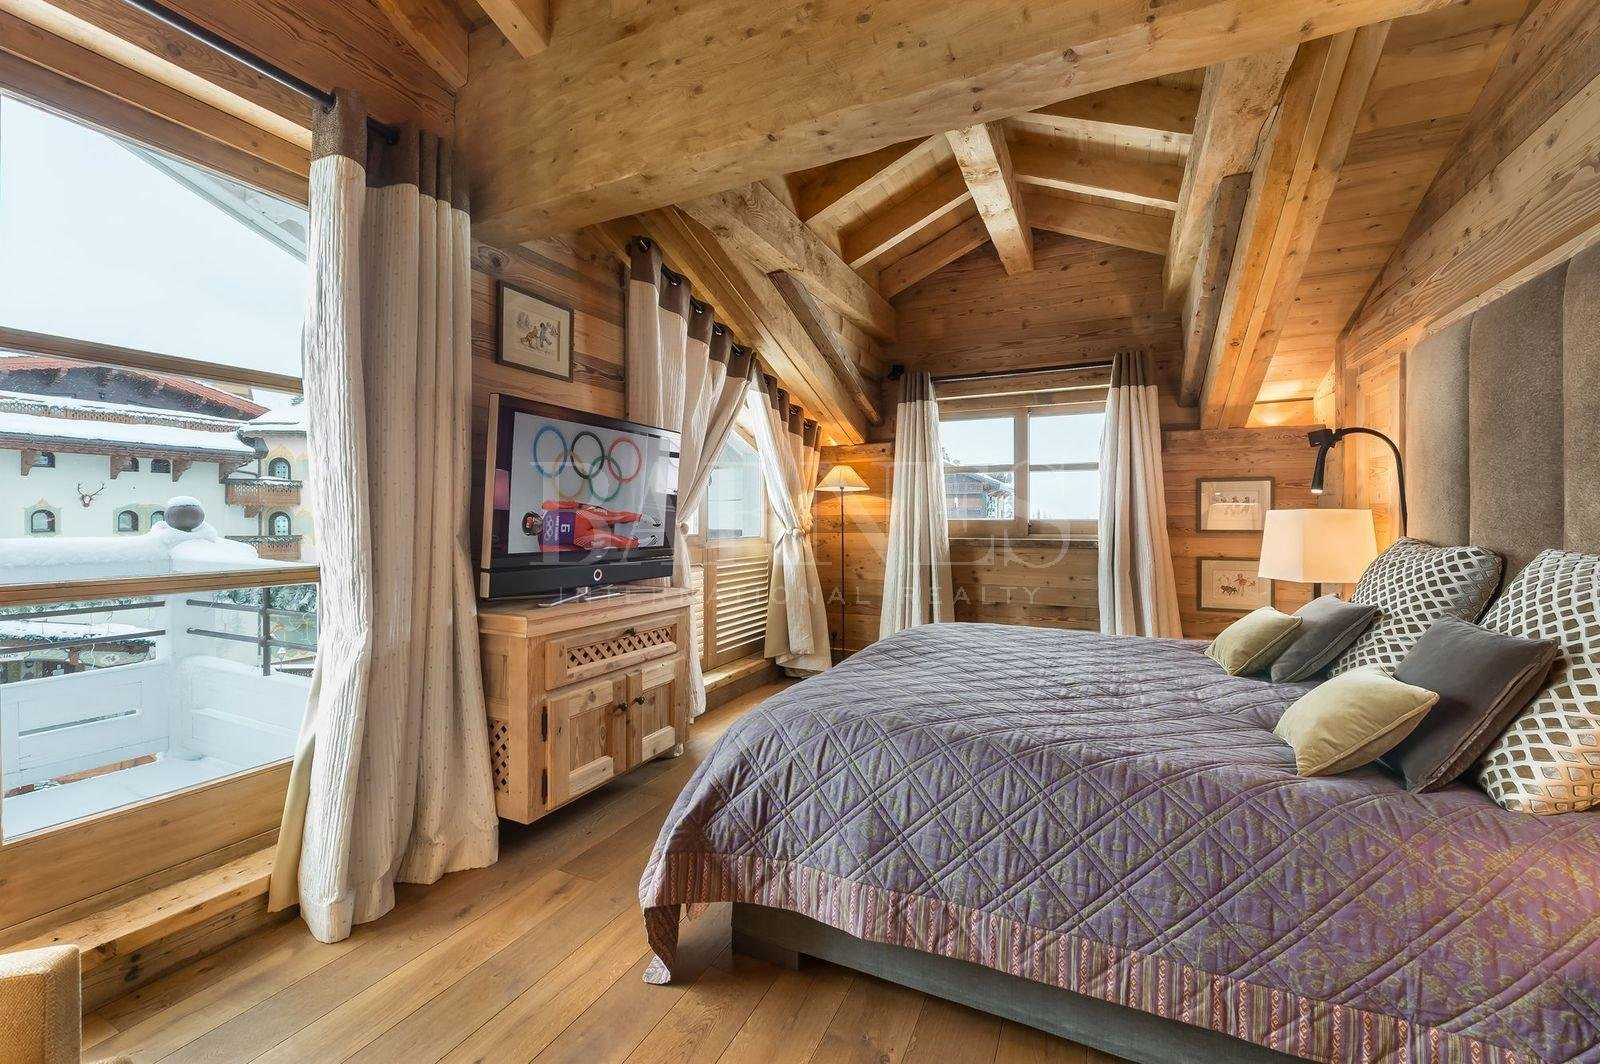 Seasonal rental Apartment - Courchevel 1850